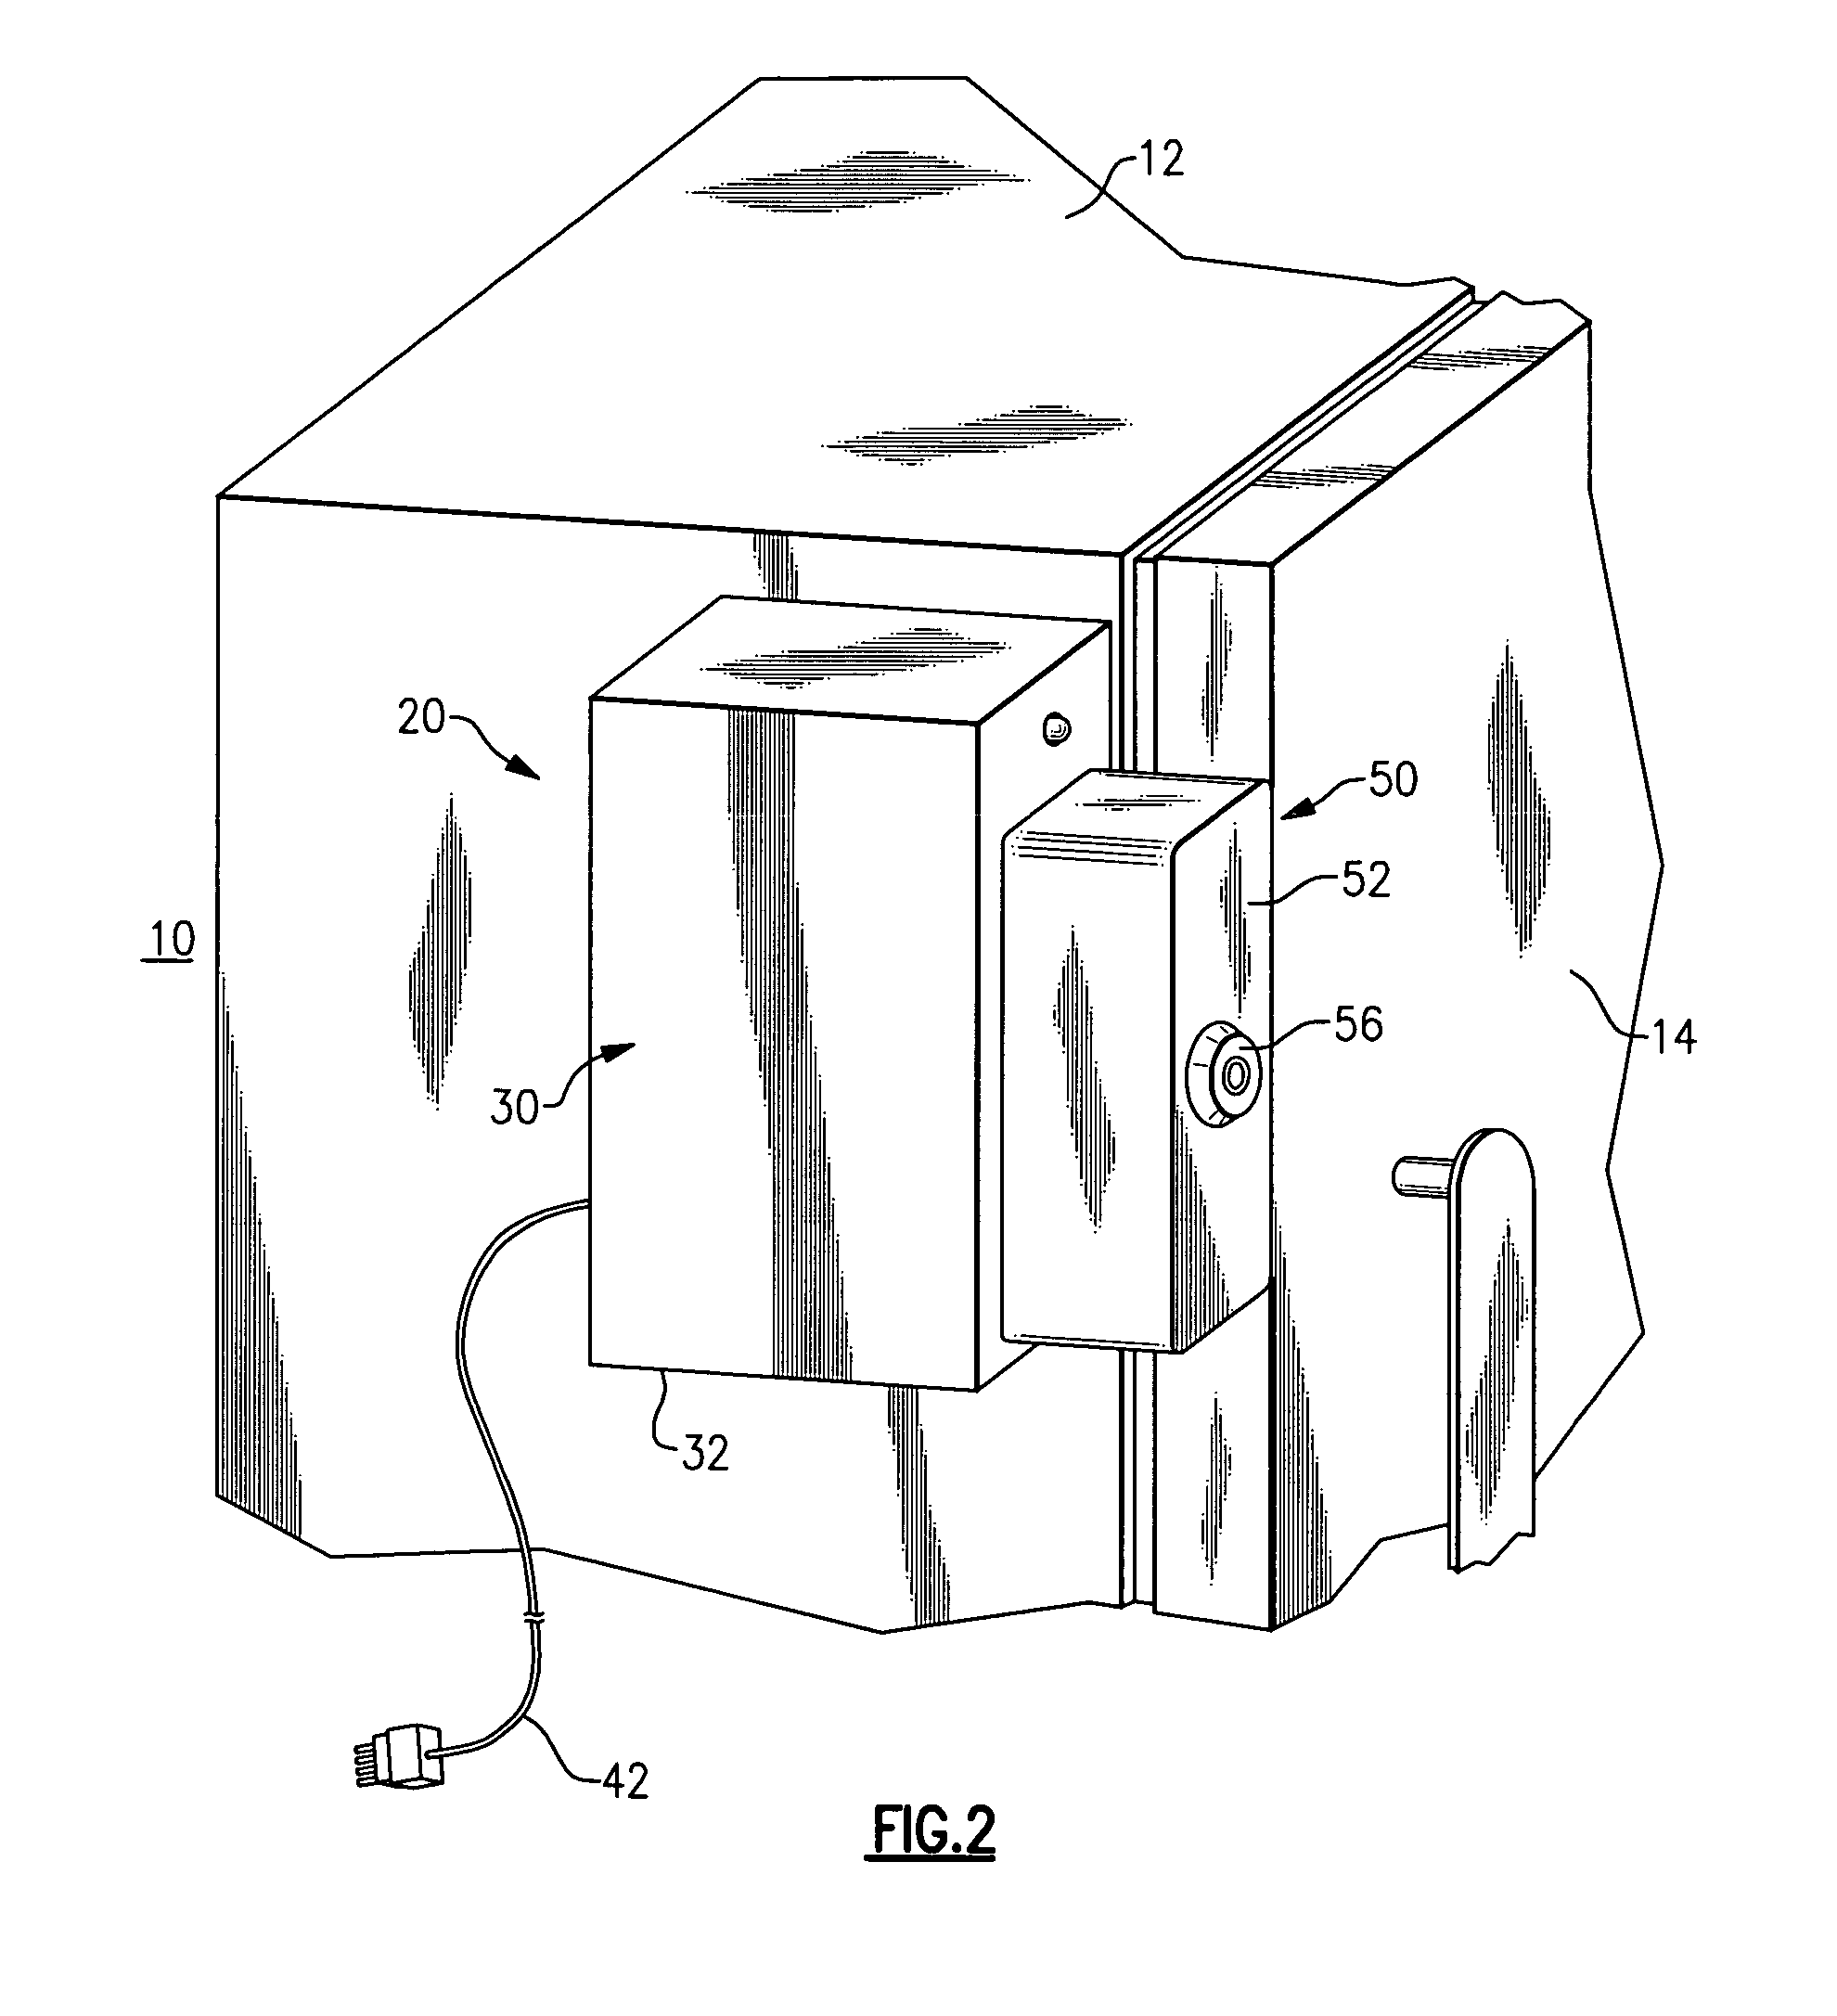 US7728711 on refrigerator enclosure